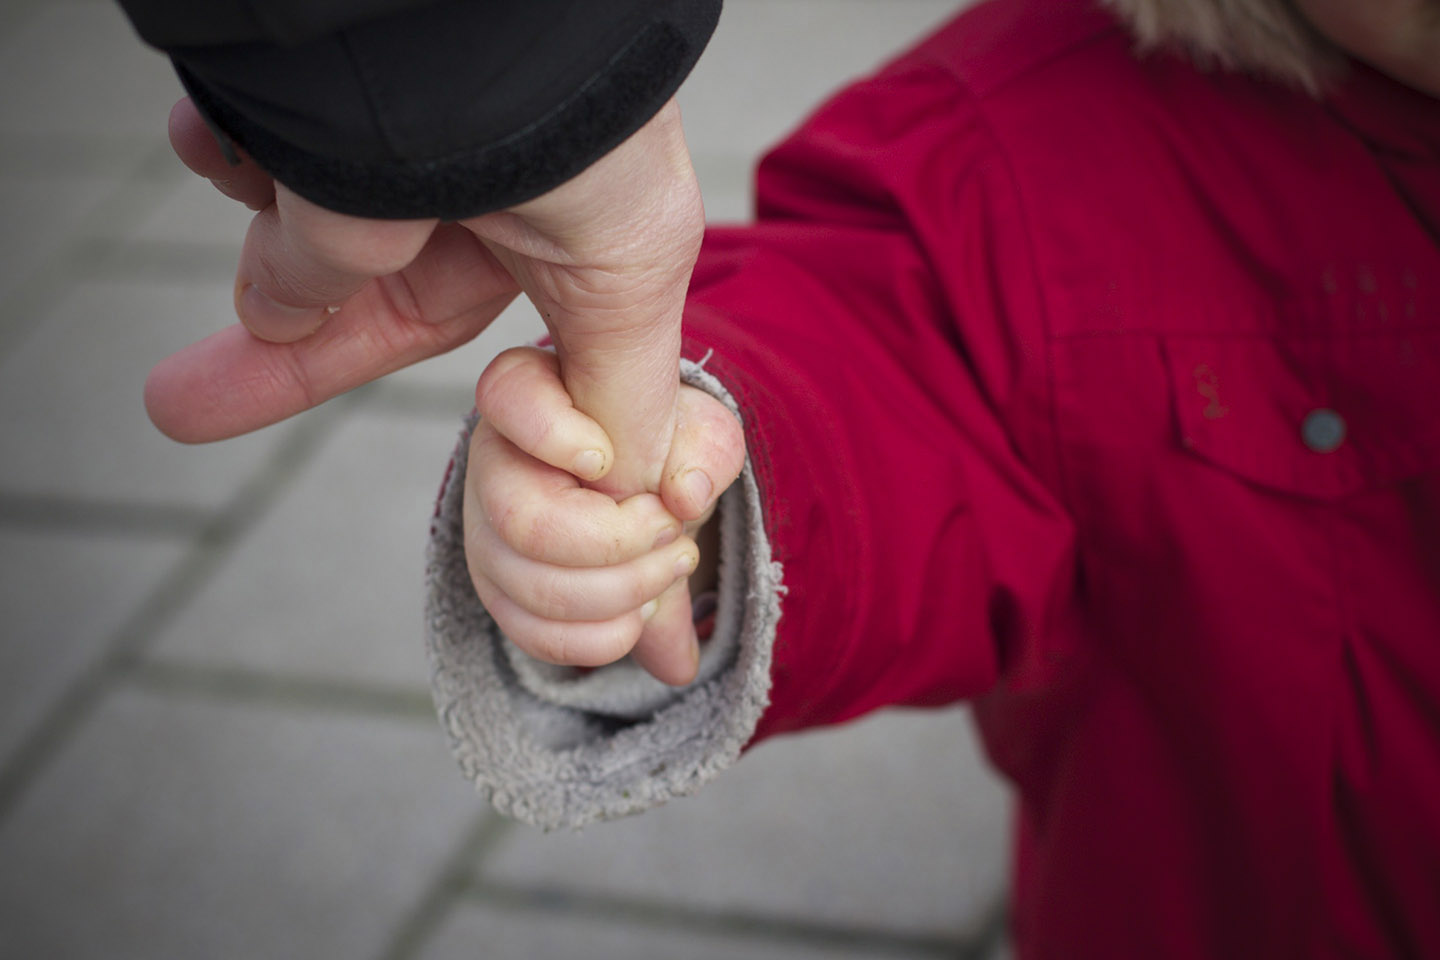 web-learning-child-father-hands-stephan-hochhaus-cc